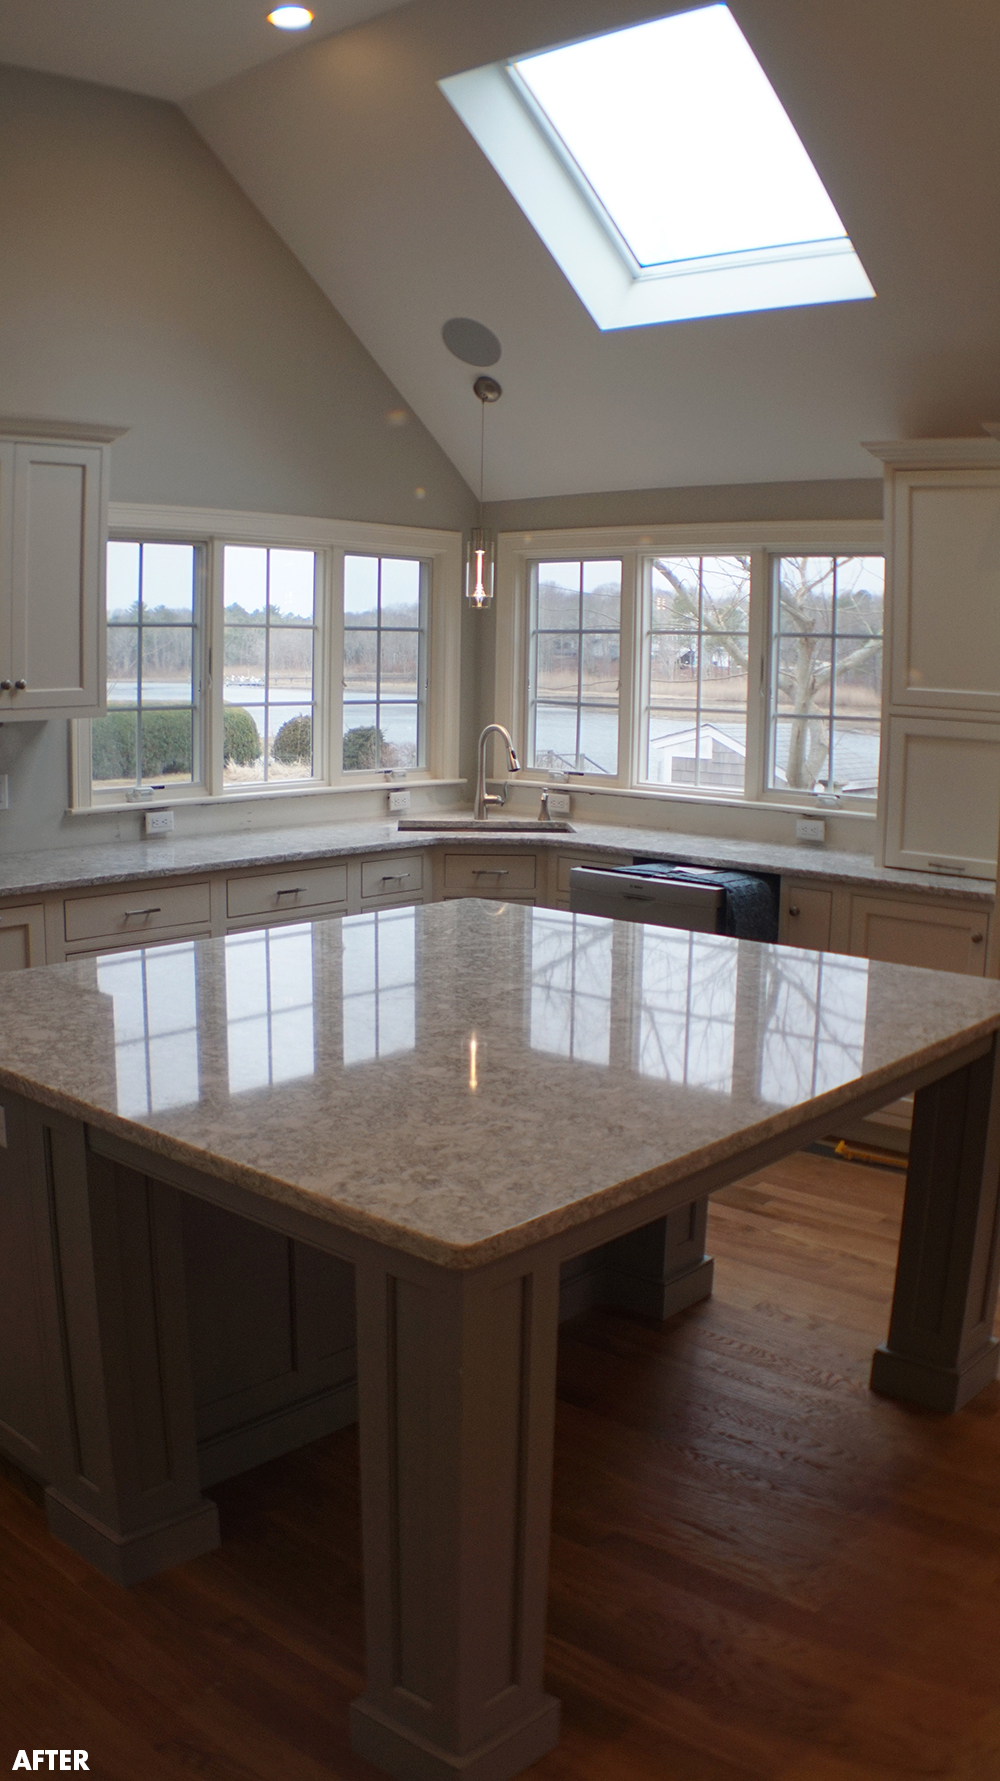 Kitchen renovation and makeover in Cape Cod